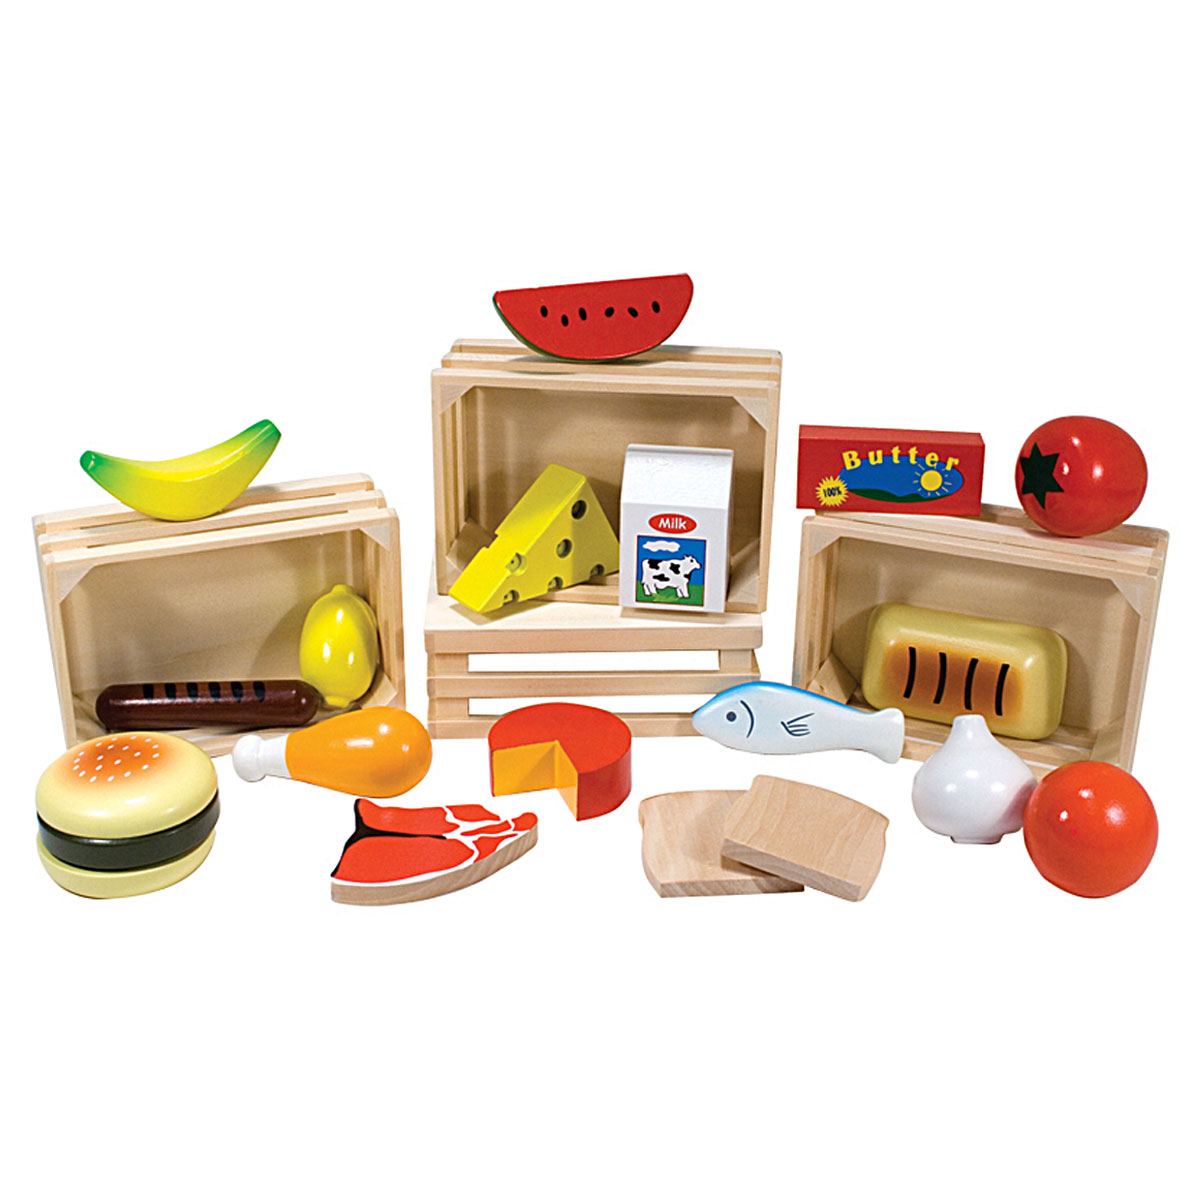 Lego Toy Food : Melissa doug lebensmittel set aus holz pirum